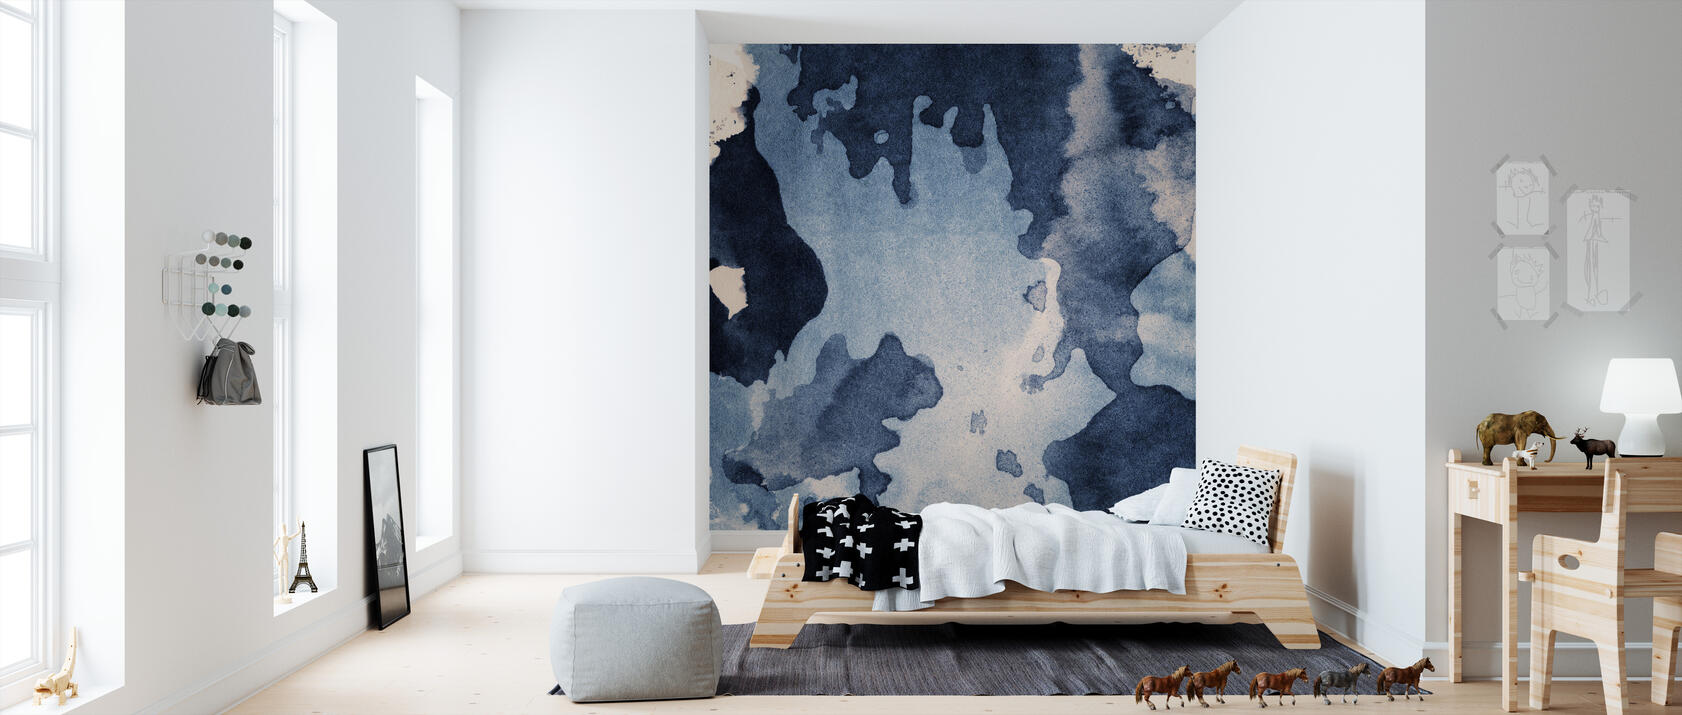 ink texture fototapete nach ma photowall. Black Bedroom Furniture Sets. Home Design Ideas